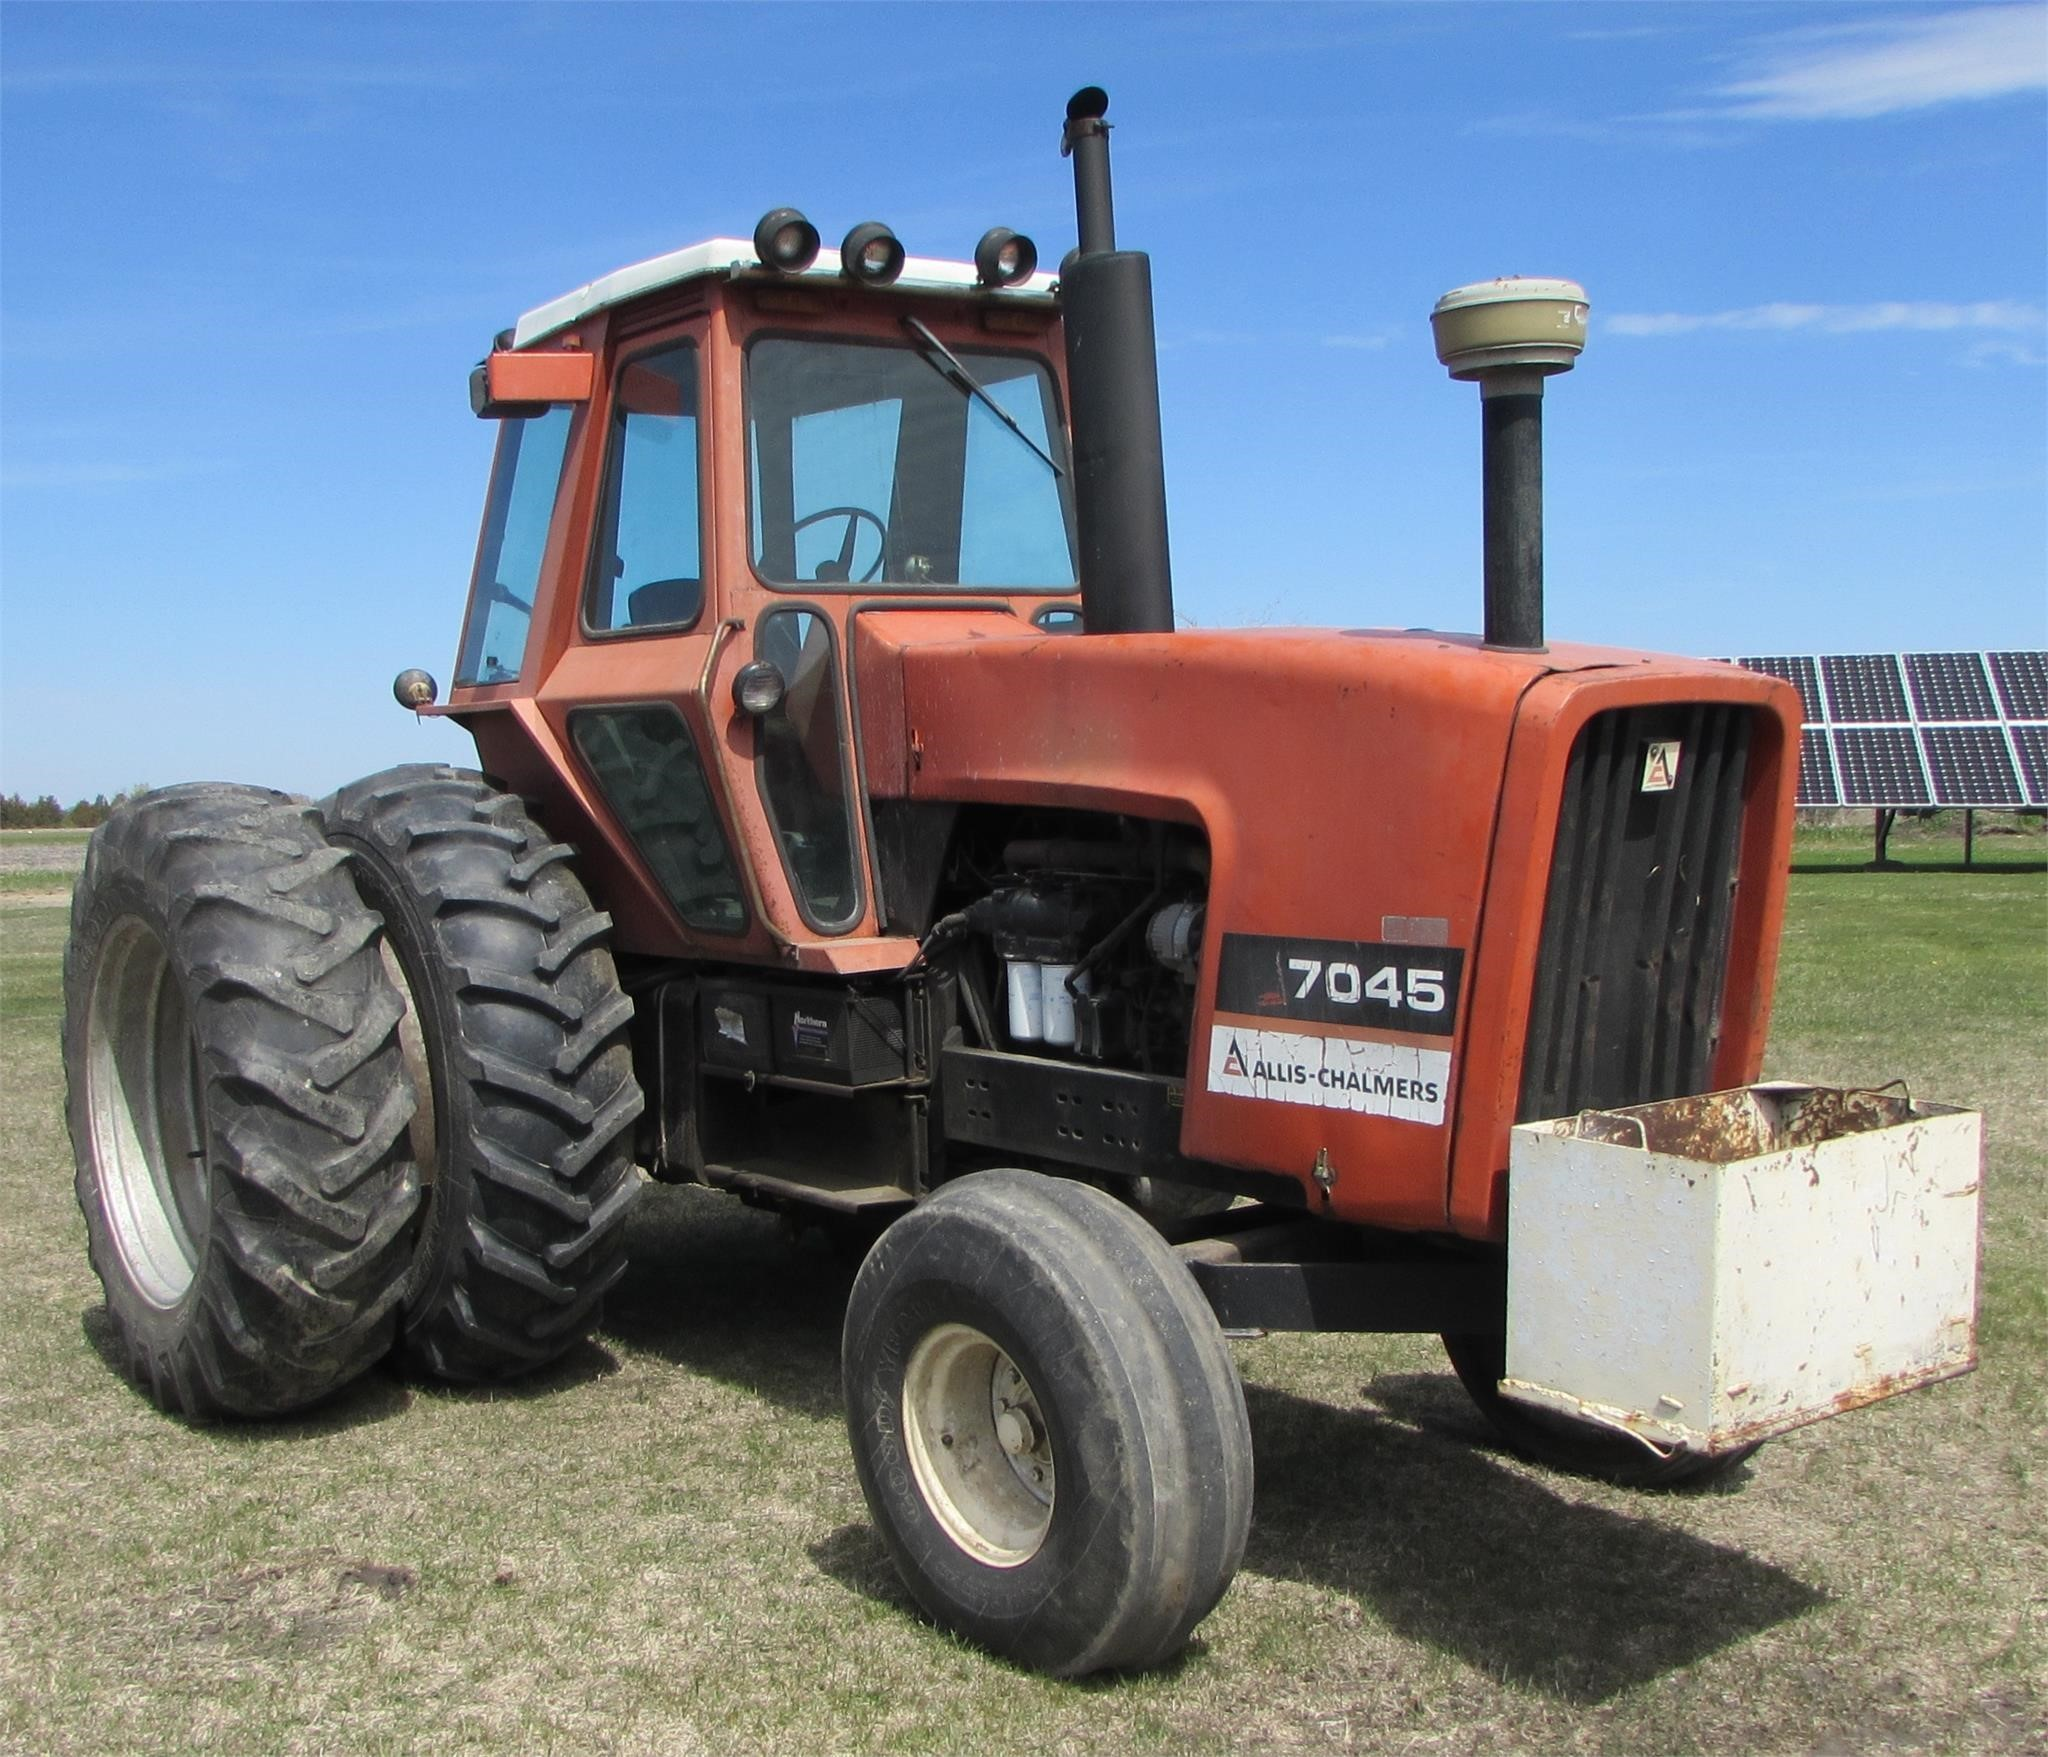 1978 Allis Chalmers 7045 Tractor